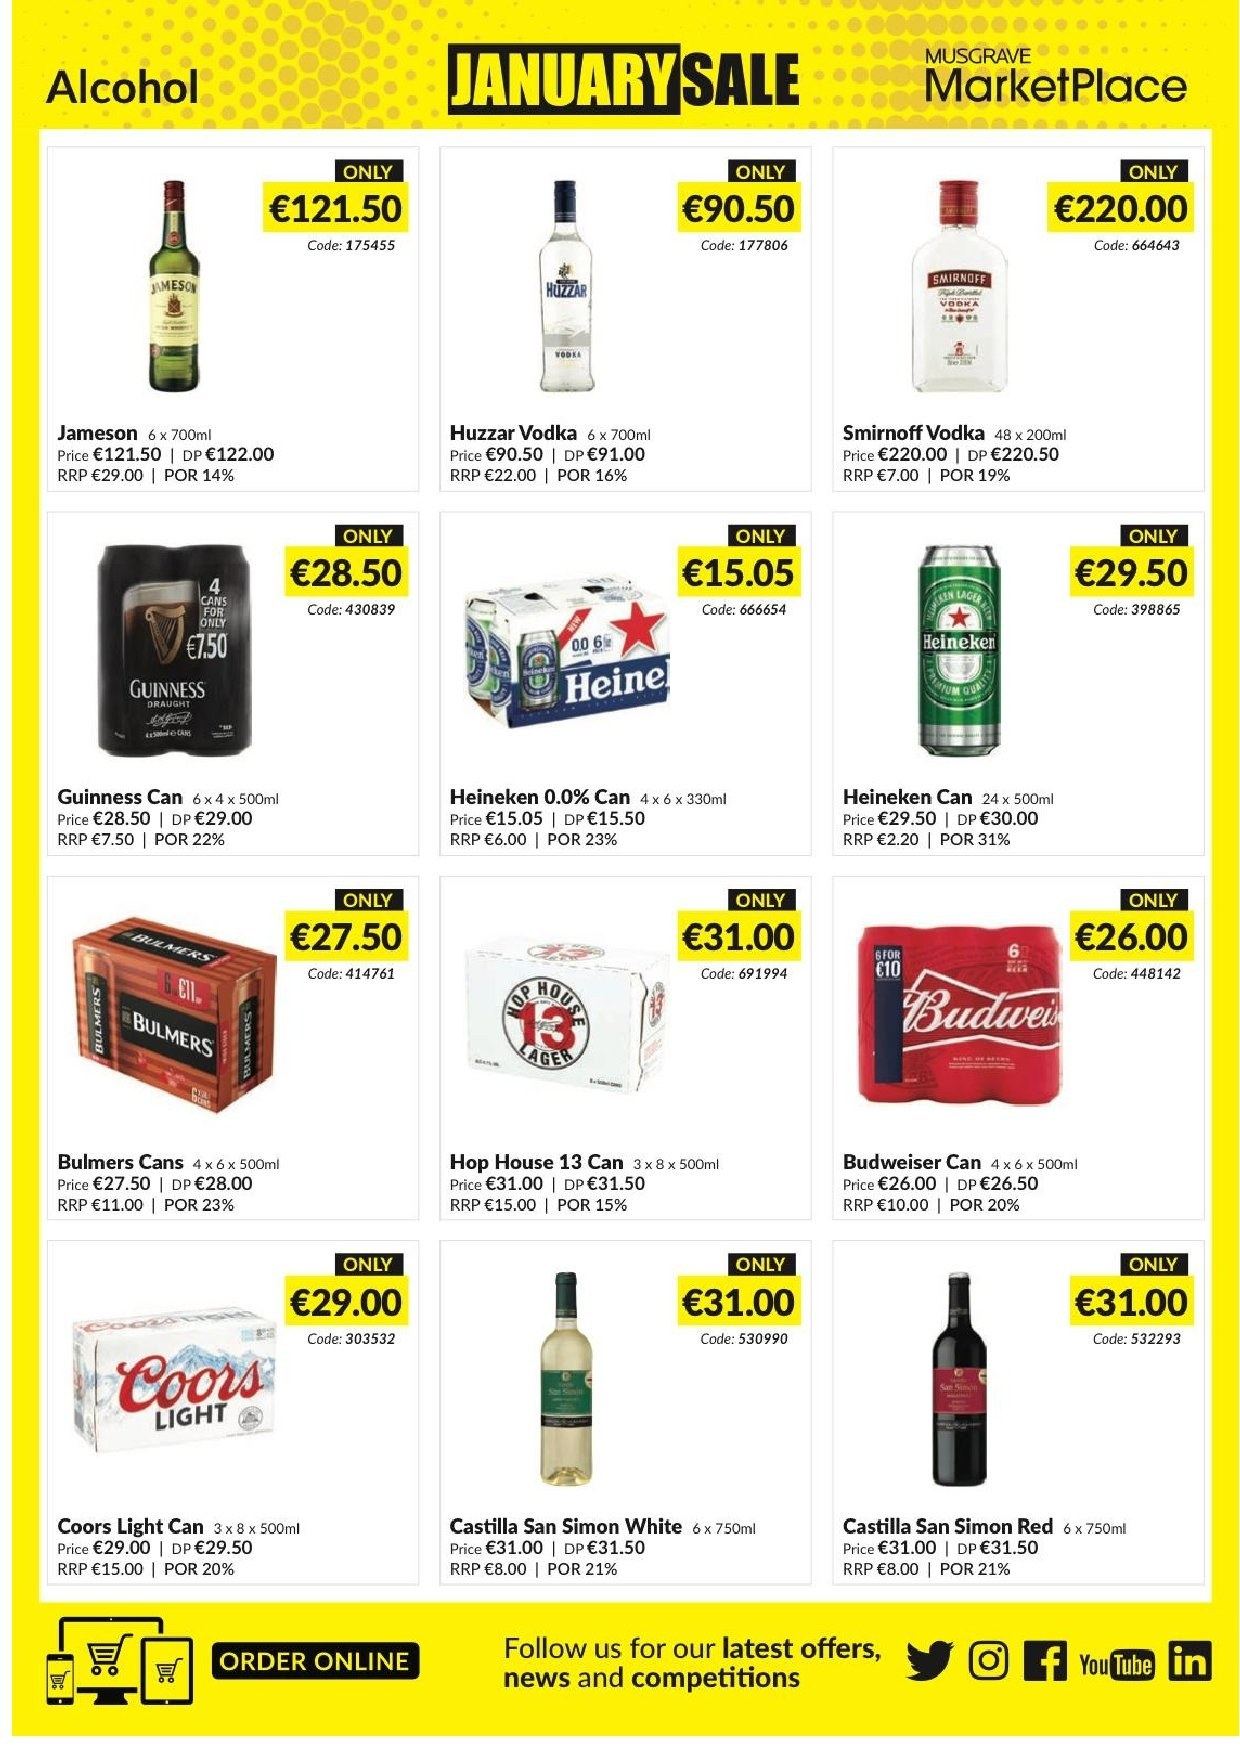 MUSGRAVE Market Place offer  - 23.12.2018 - 19.1.2019 - Sales products - Budweiser, Coors, Smirnoff, vodka, Jameson, beer, Heineken. Page 31.